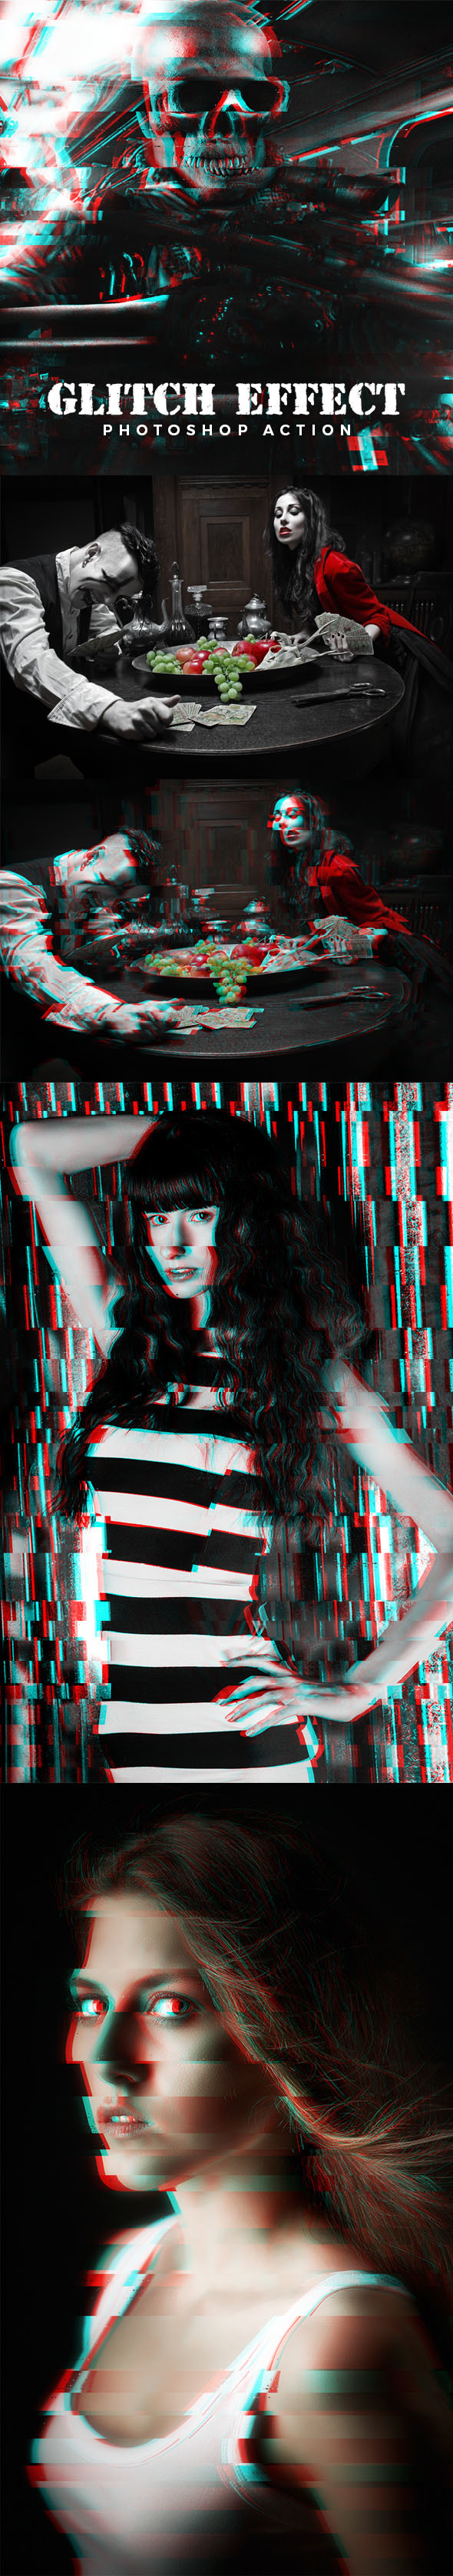 Glitch Effect Photoshop Action - Photo Effects Actions